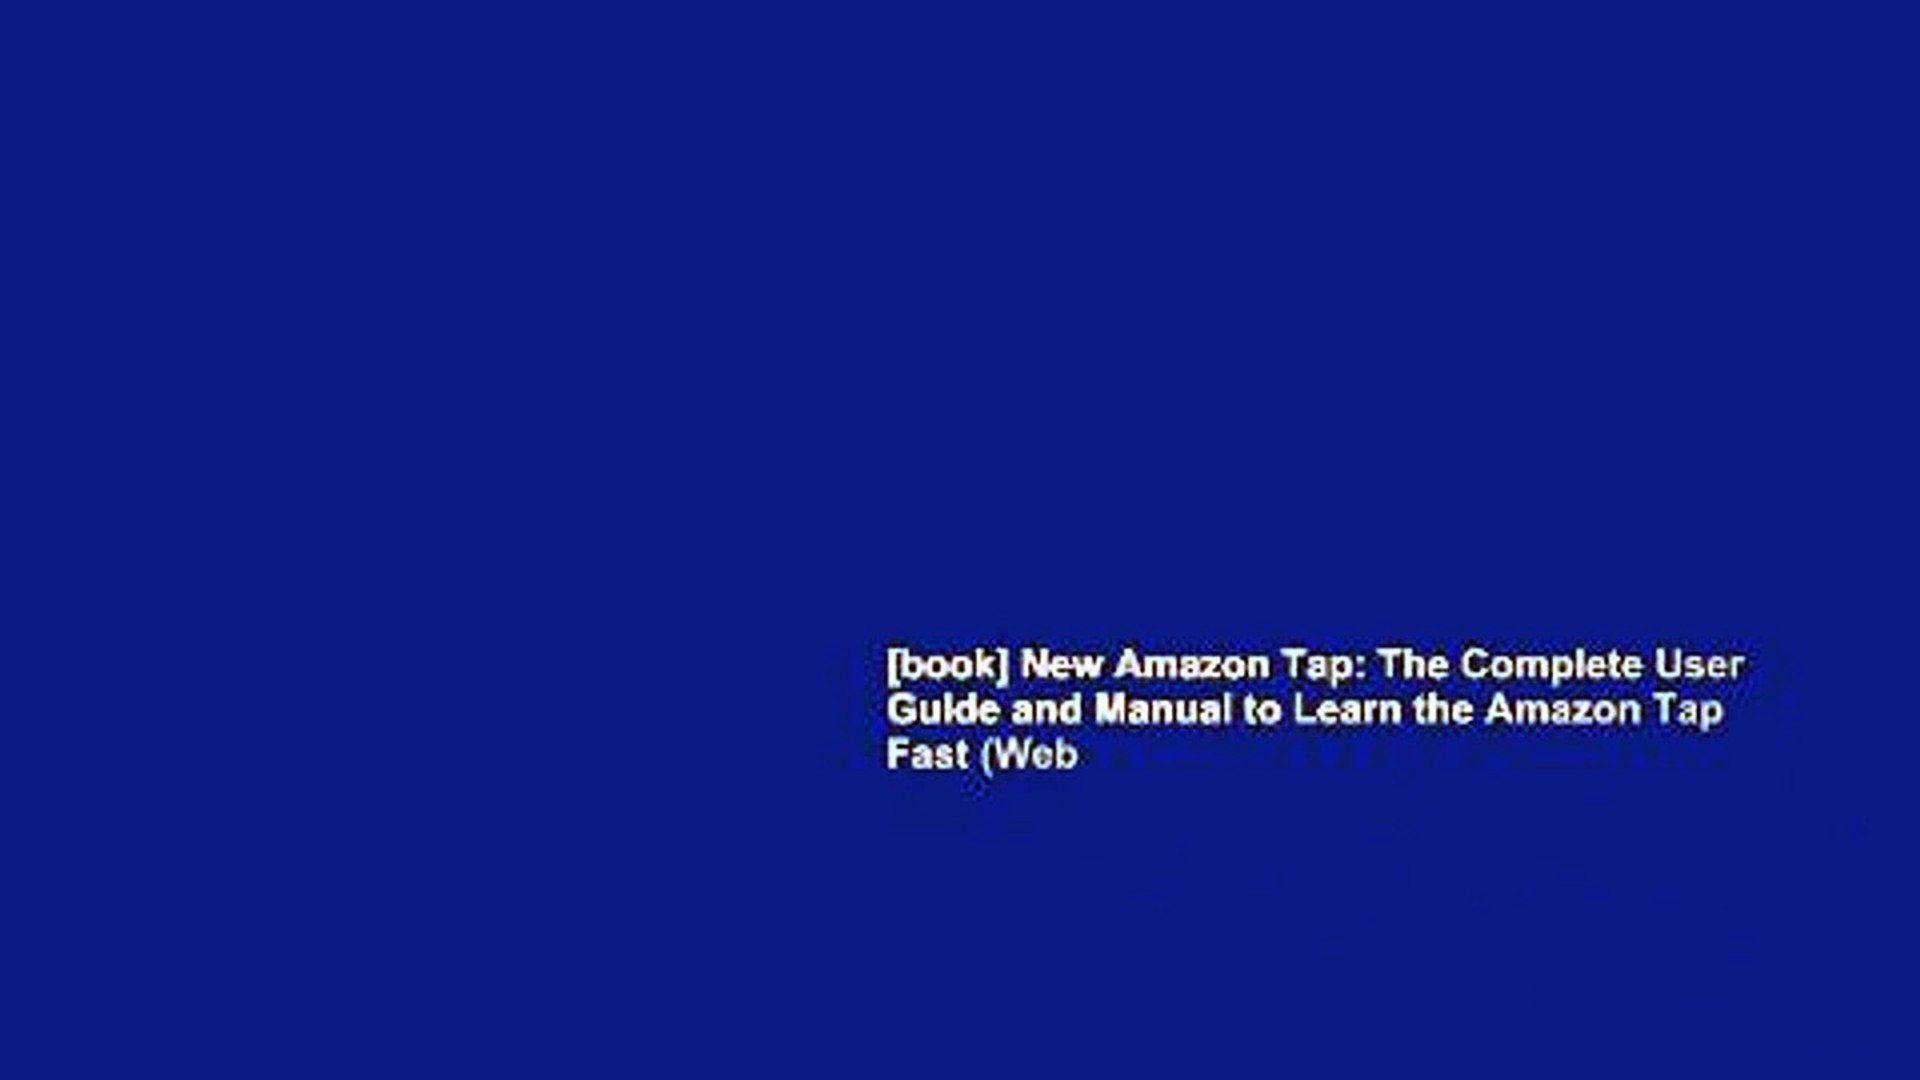 [book] New Amazon Tap: The Complete User Guide and Manual to Learn the Amazon Tap Fast (Web